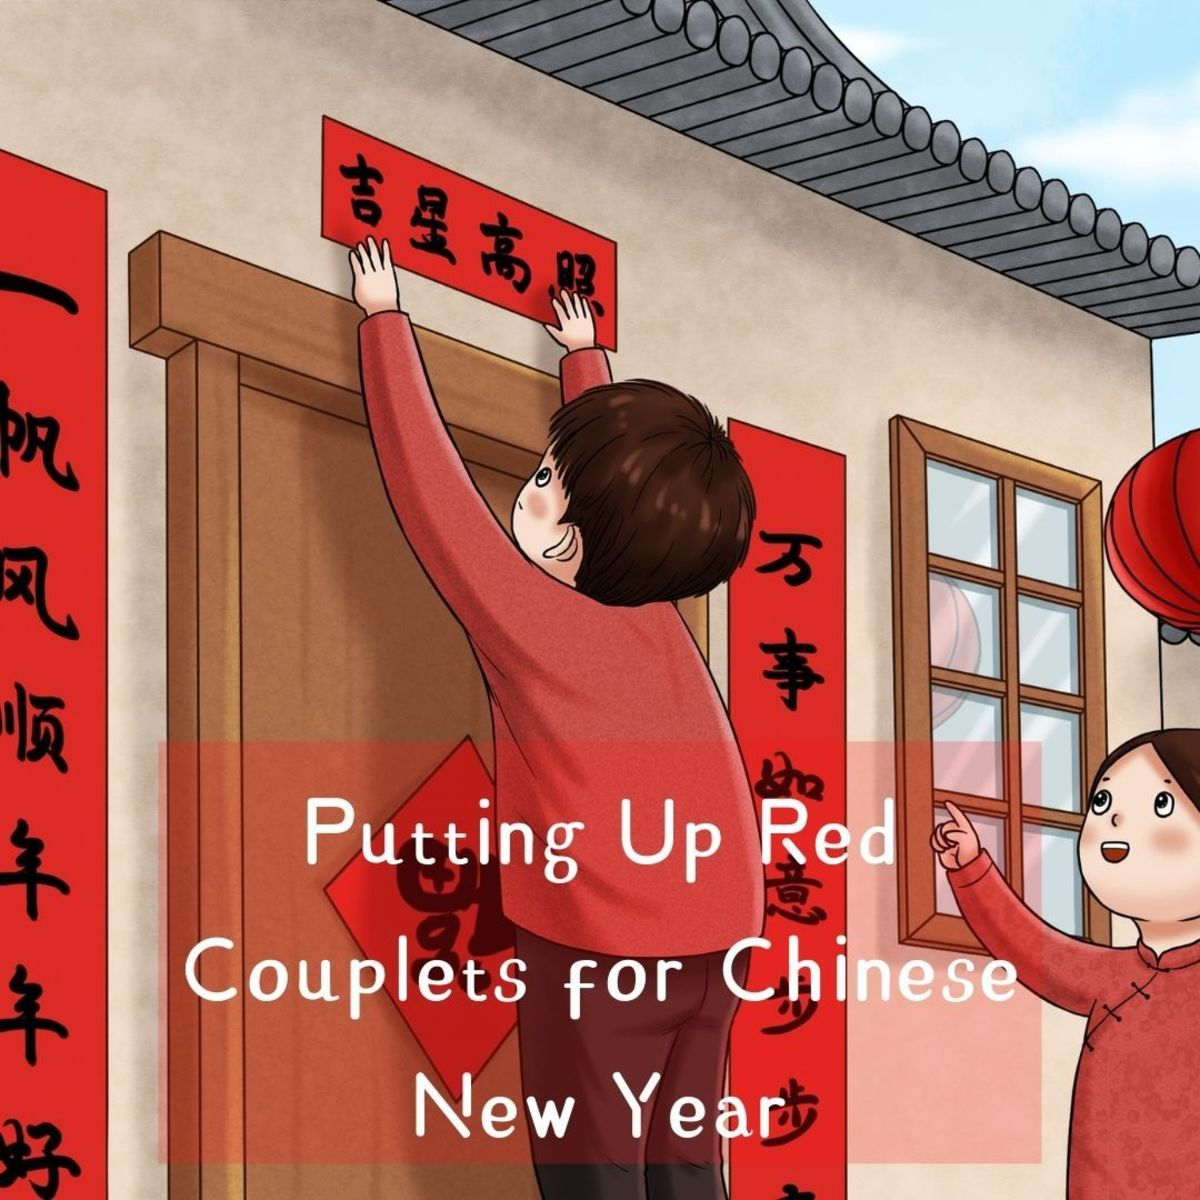 Nian indirectly started the rituals among the Chinese to hang red couplets at the main door, wear red clothing, and light up firecrackers during Chinese New Year